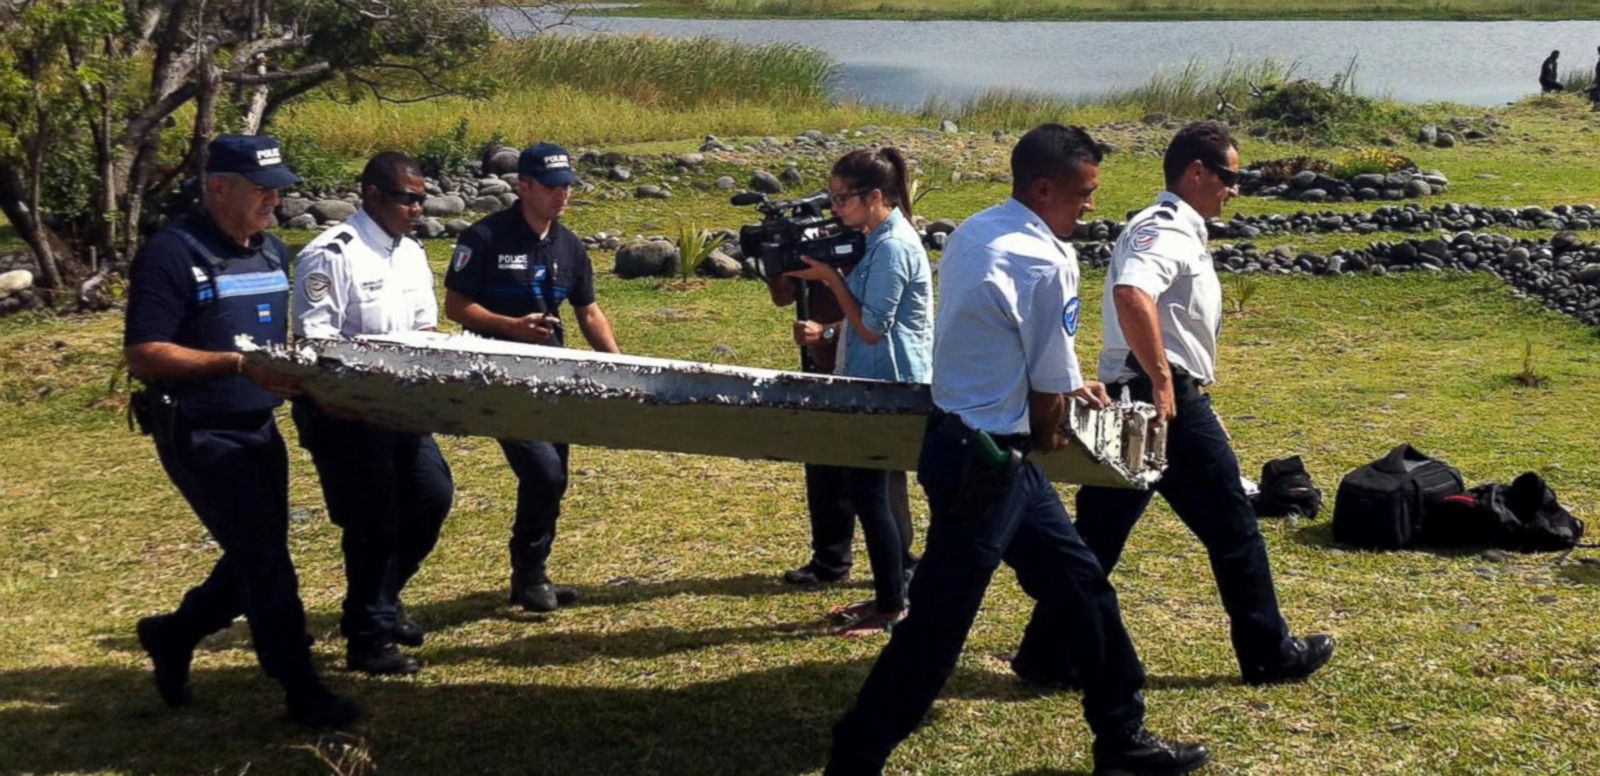 VIDEO: Debris Found on Madagascar Shore Believed to be Part of Boeing 777